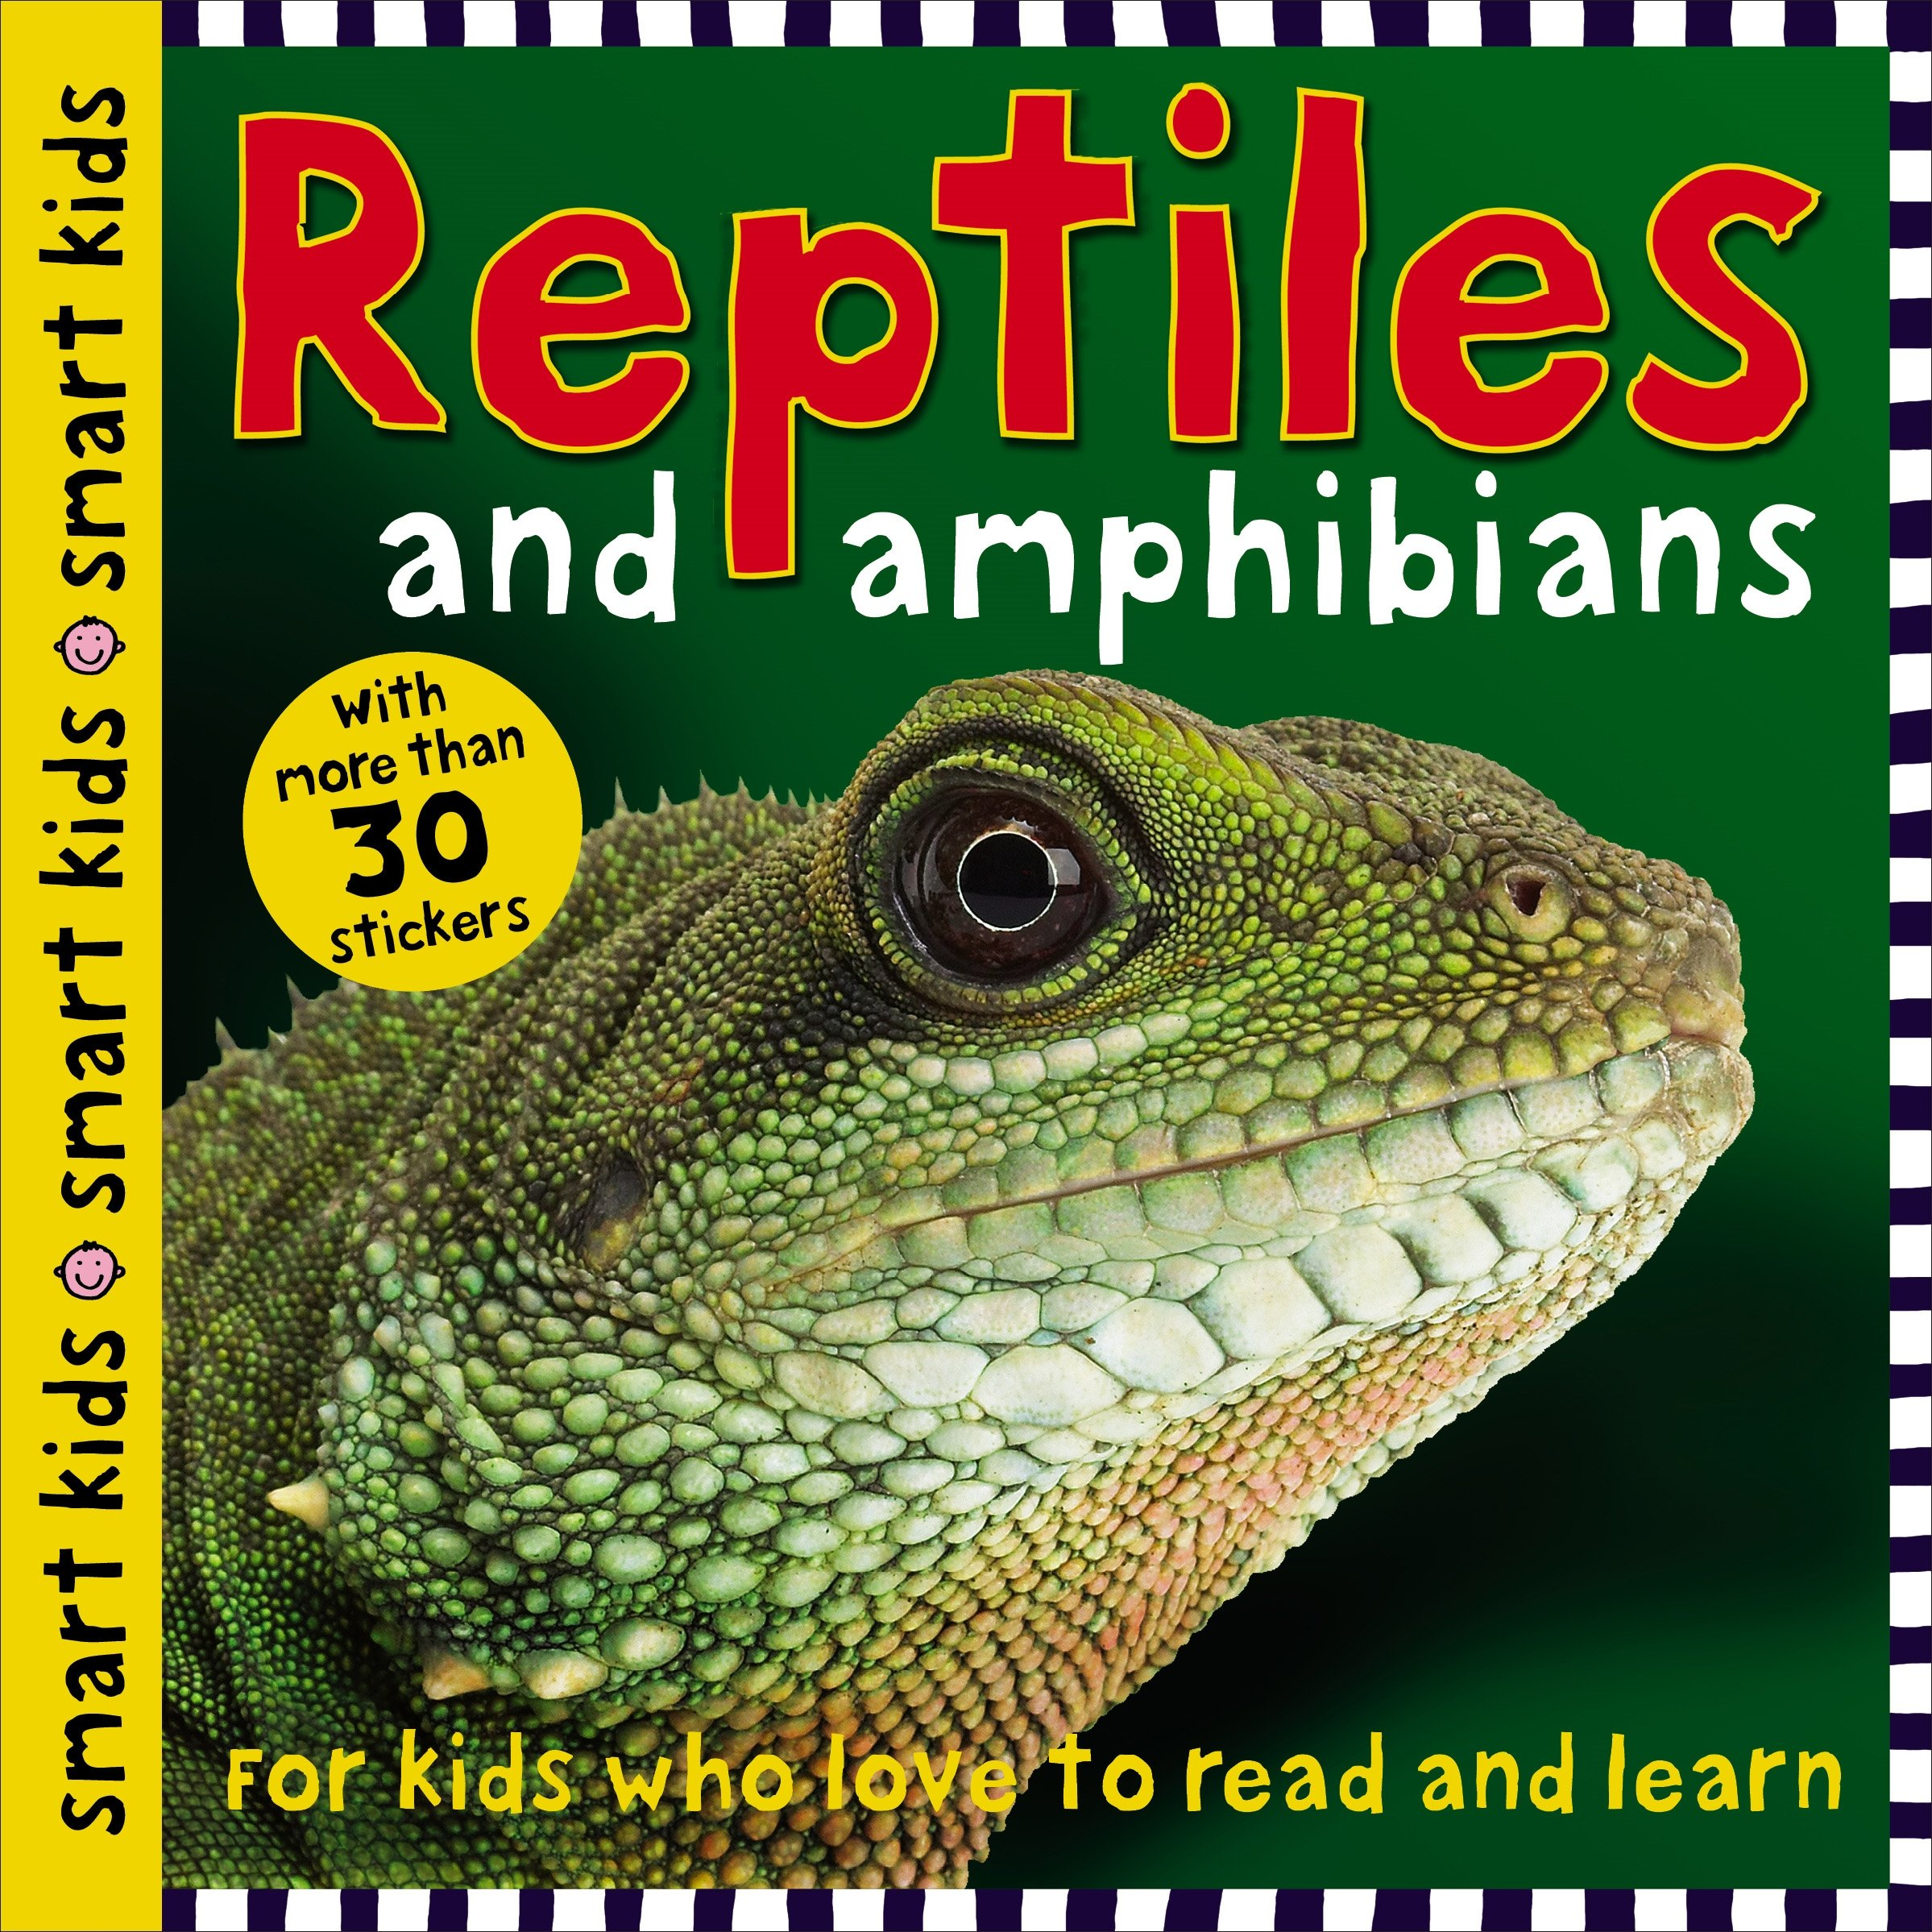 Smart Kids Reptiles and Amphibians: with more than 30 stickers